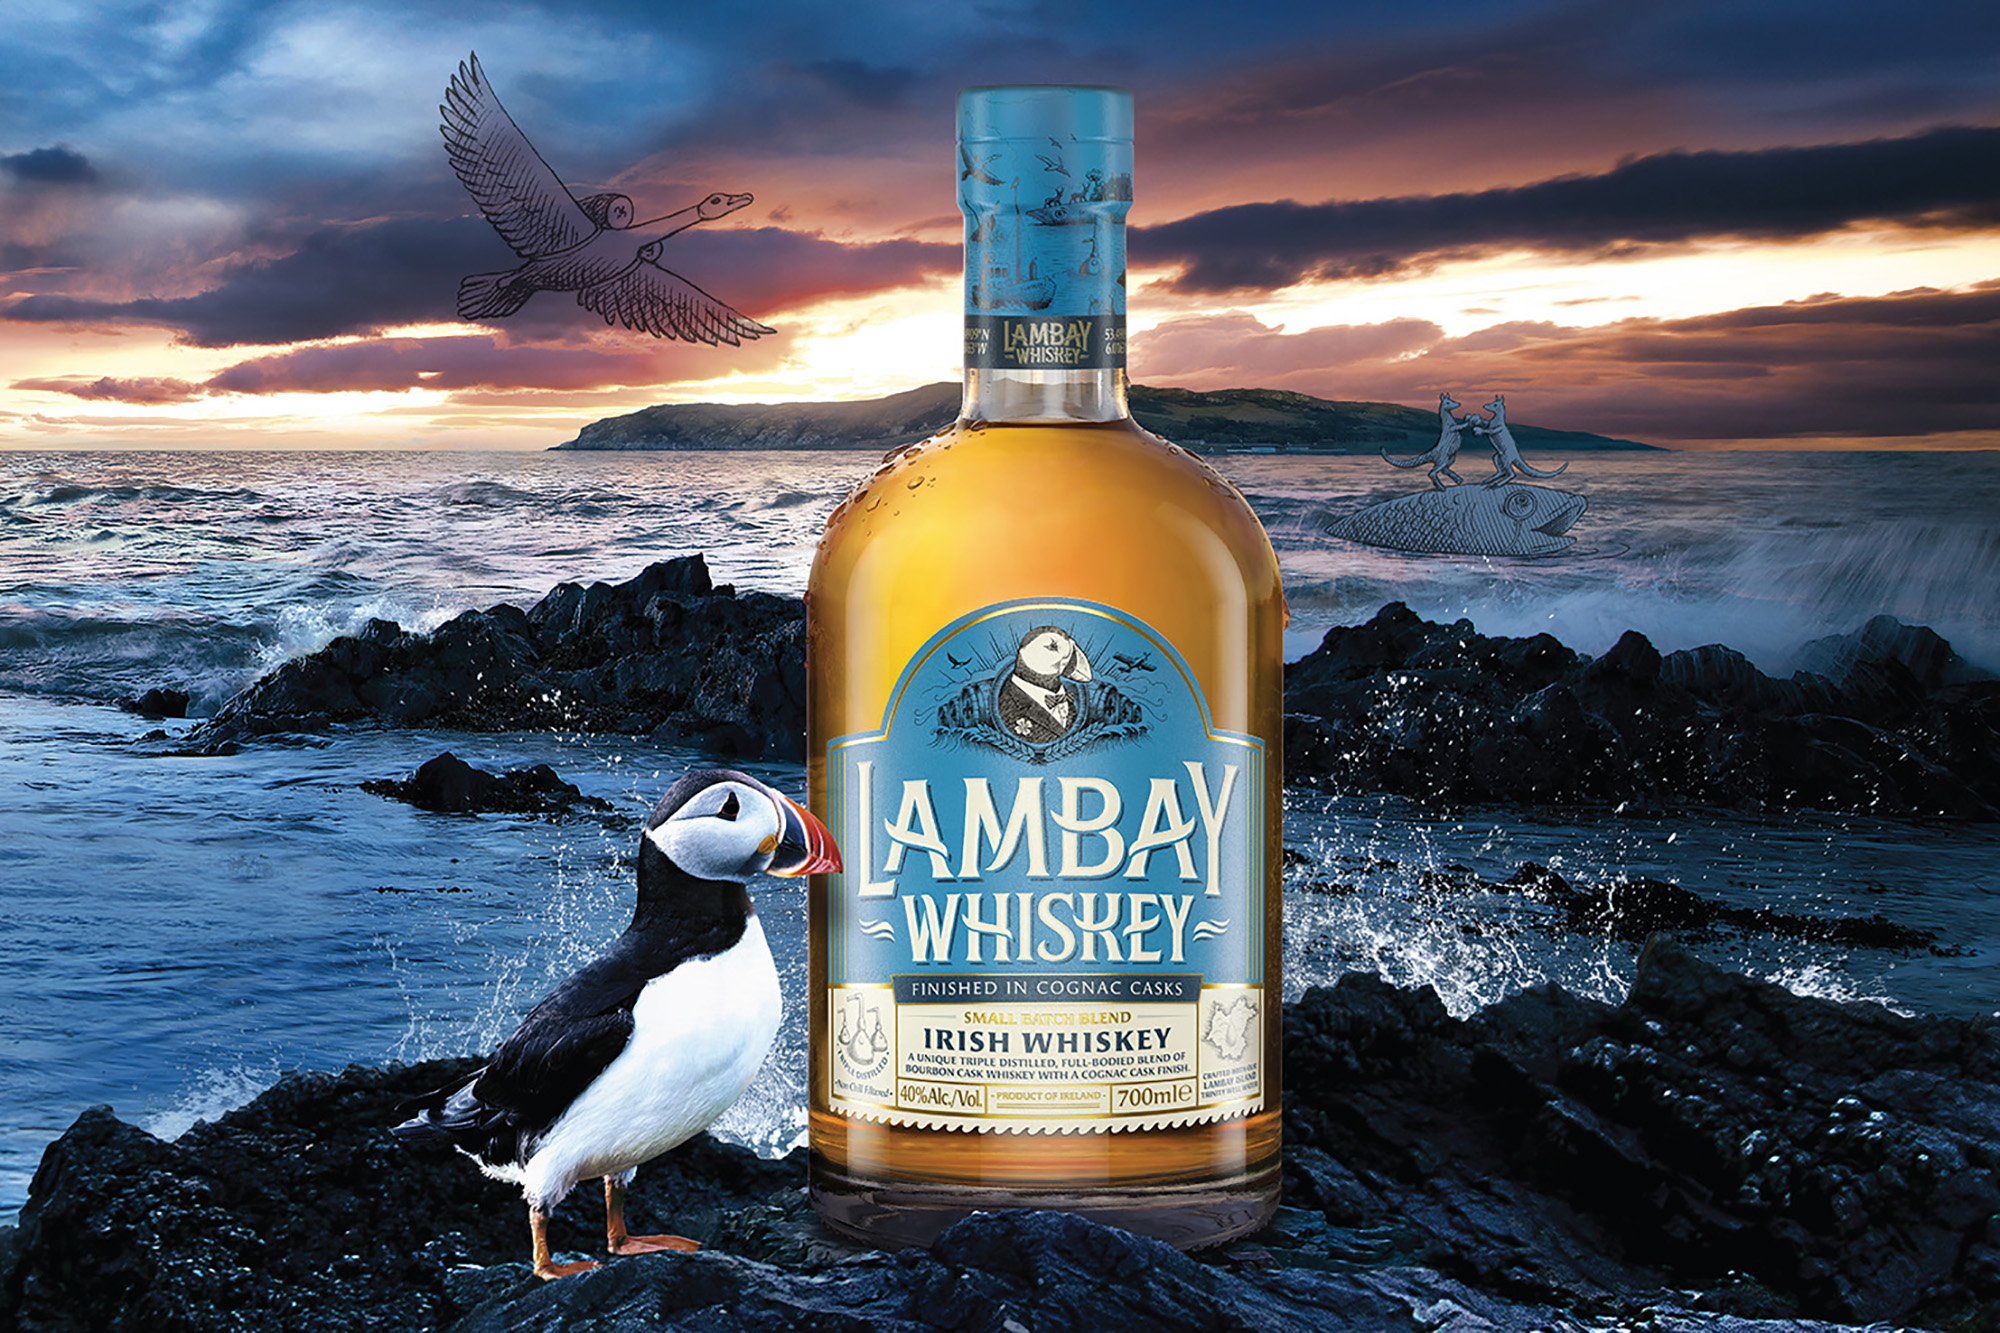 Cover image: Lambay Irish Whiskey